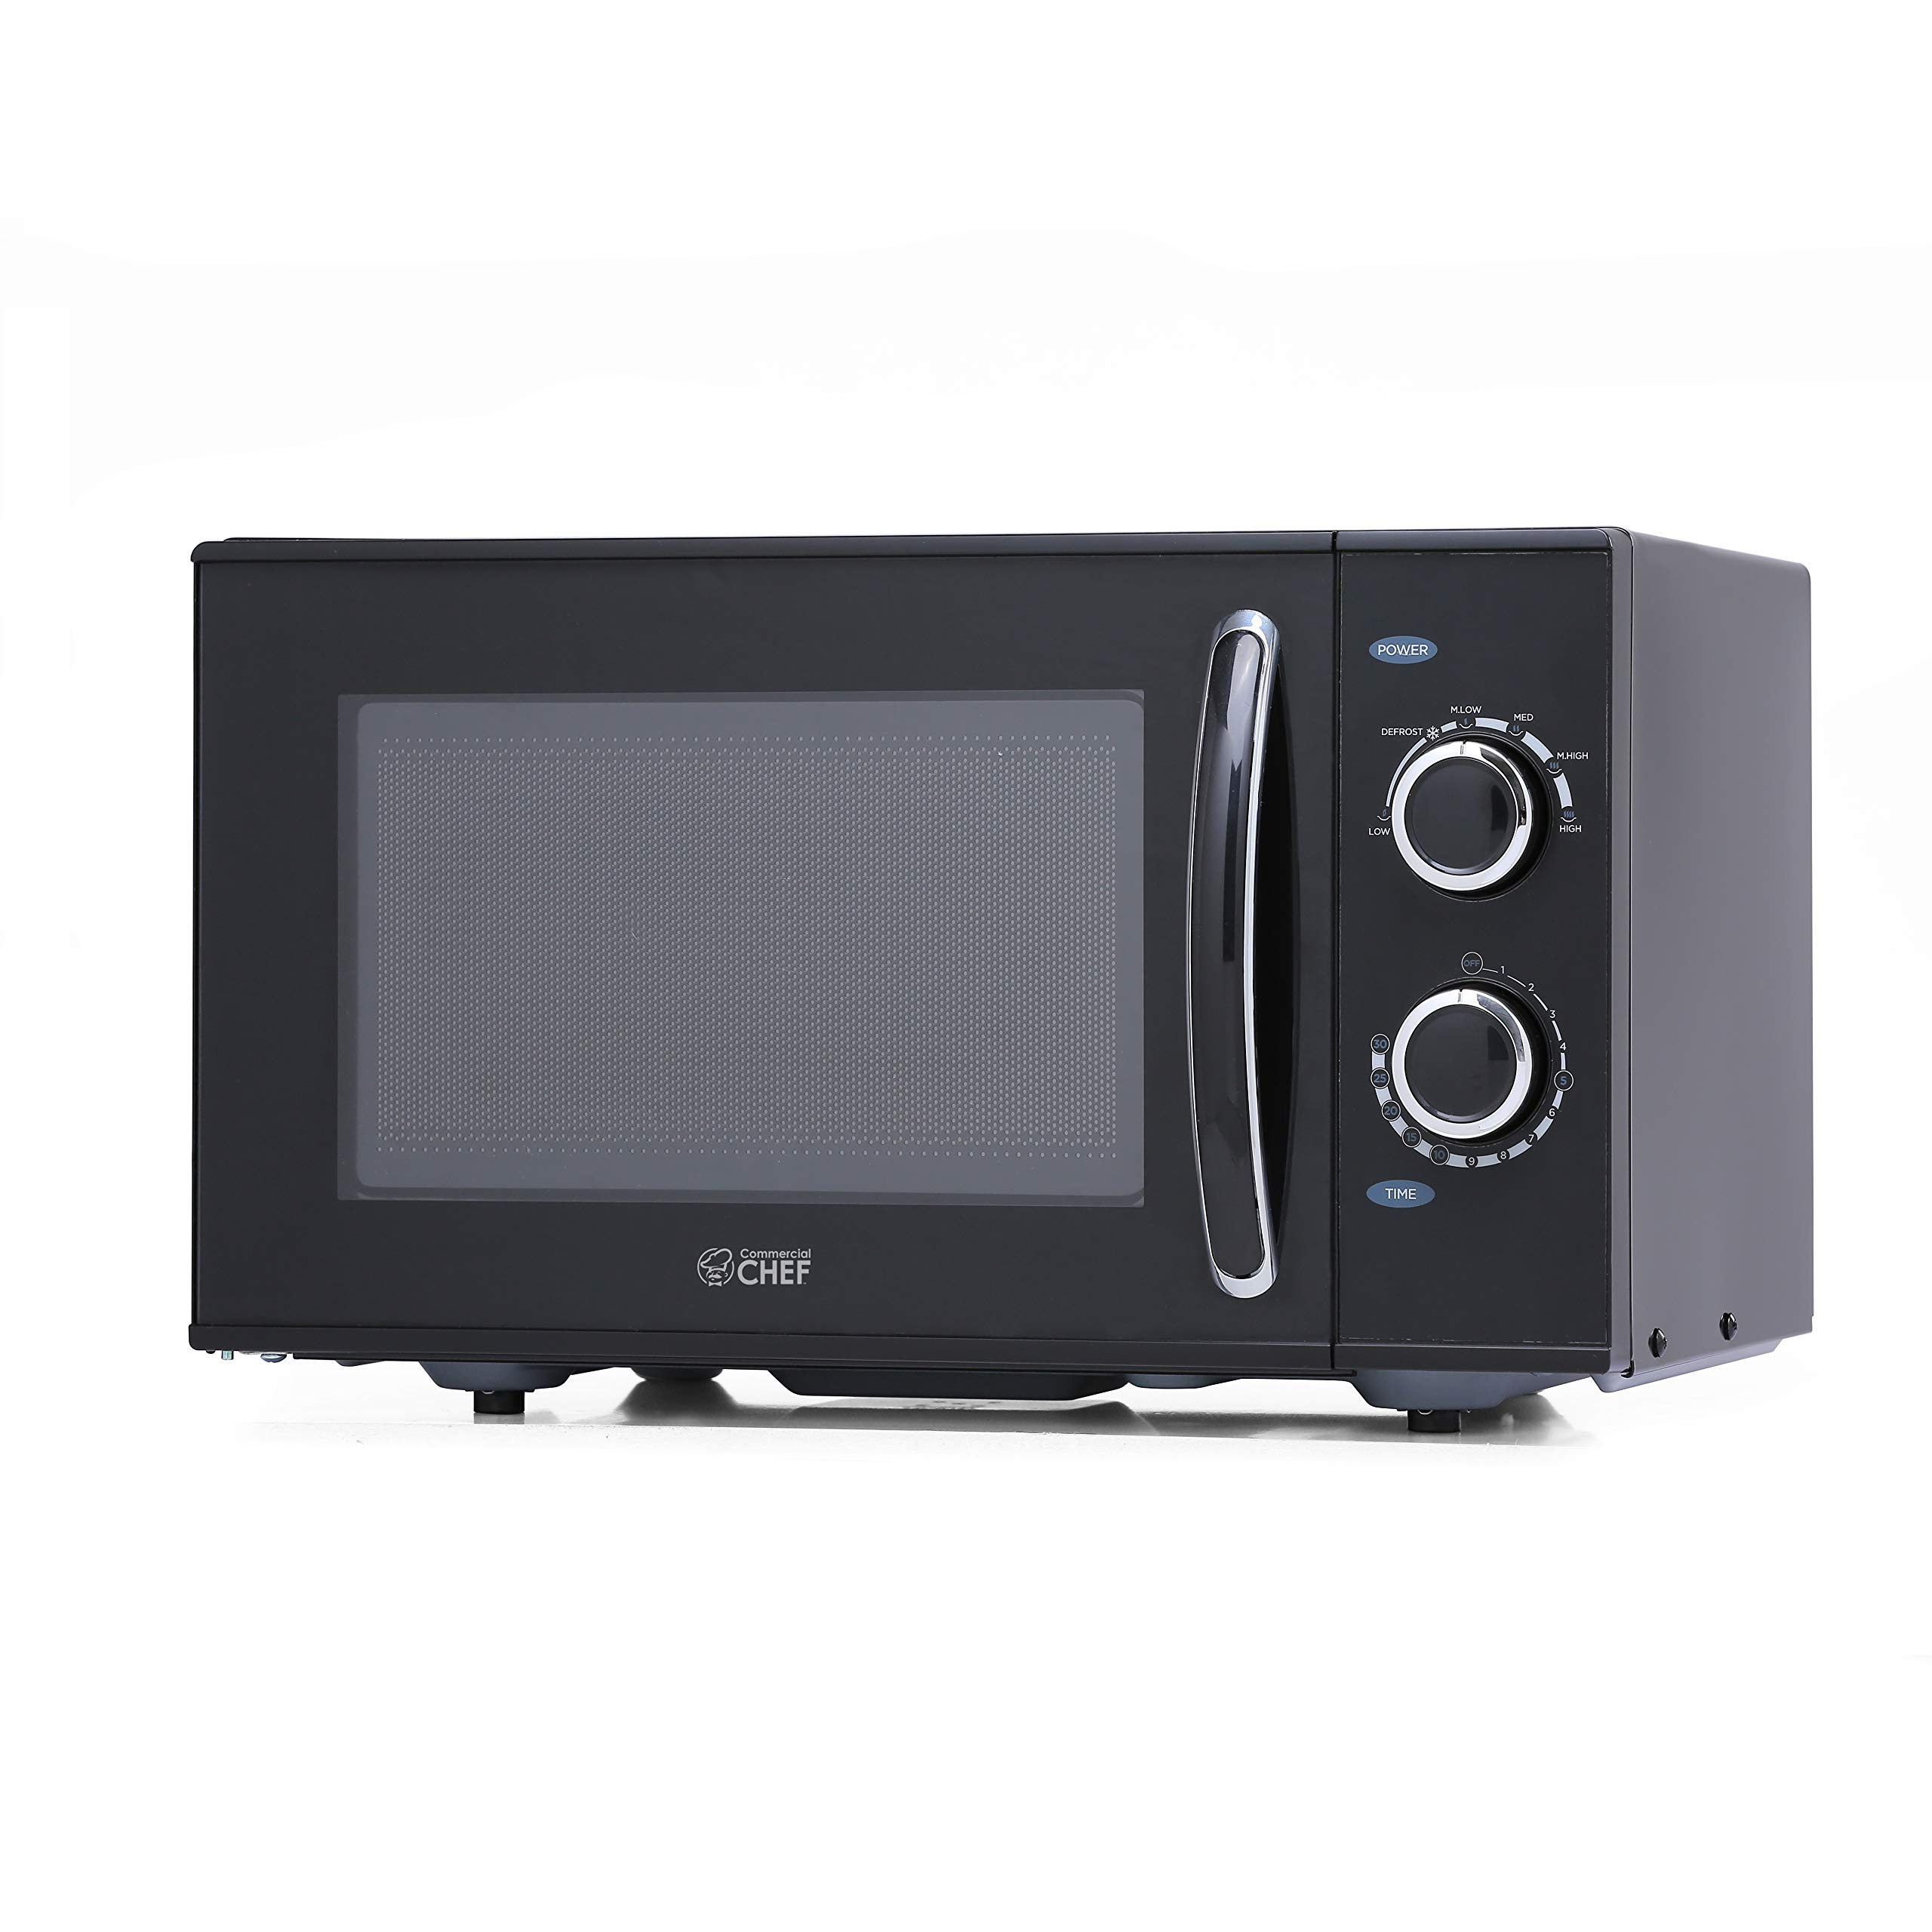 Commercial Chef CHMH900B6C 0.9 Cubic Foot Countertop Microwave, Compact, Rotary Control, Black by Commercial CHEF